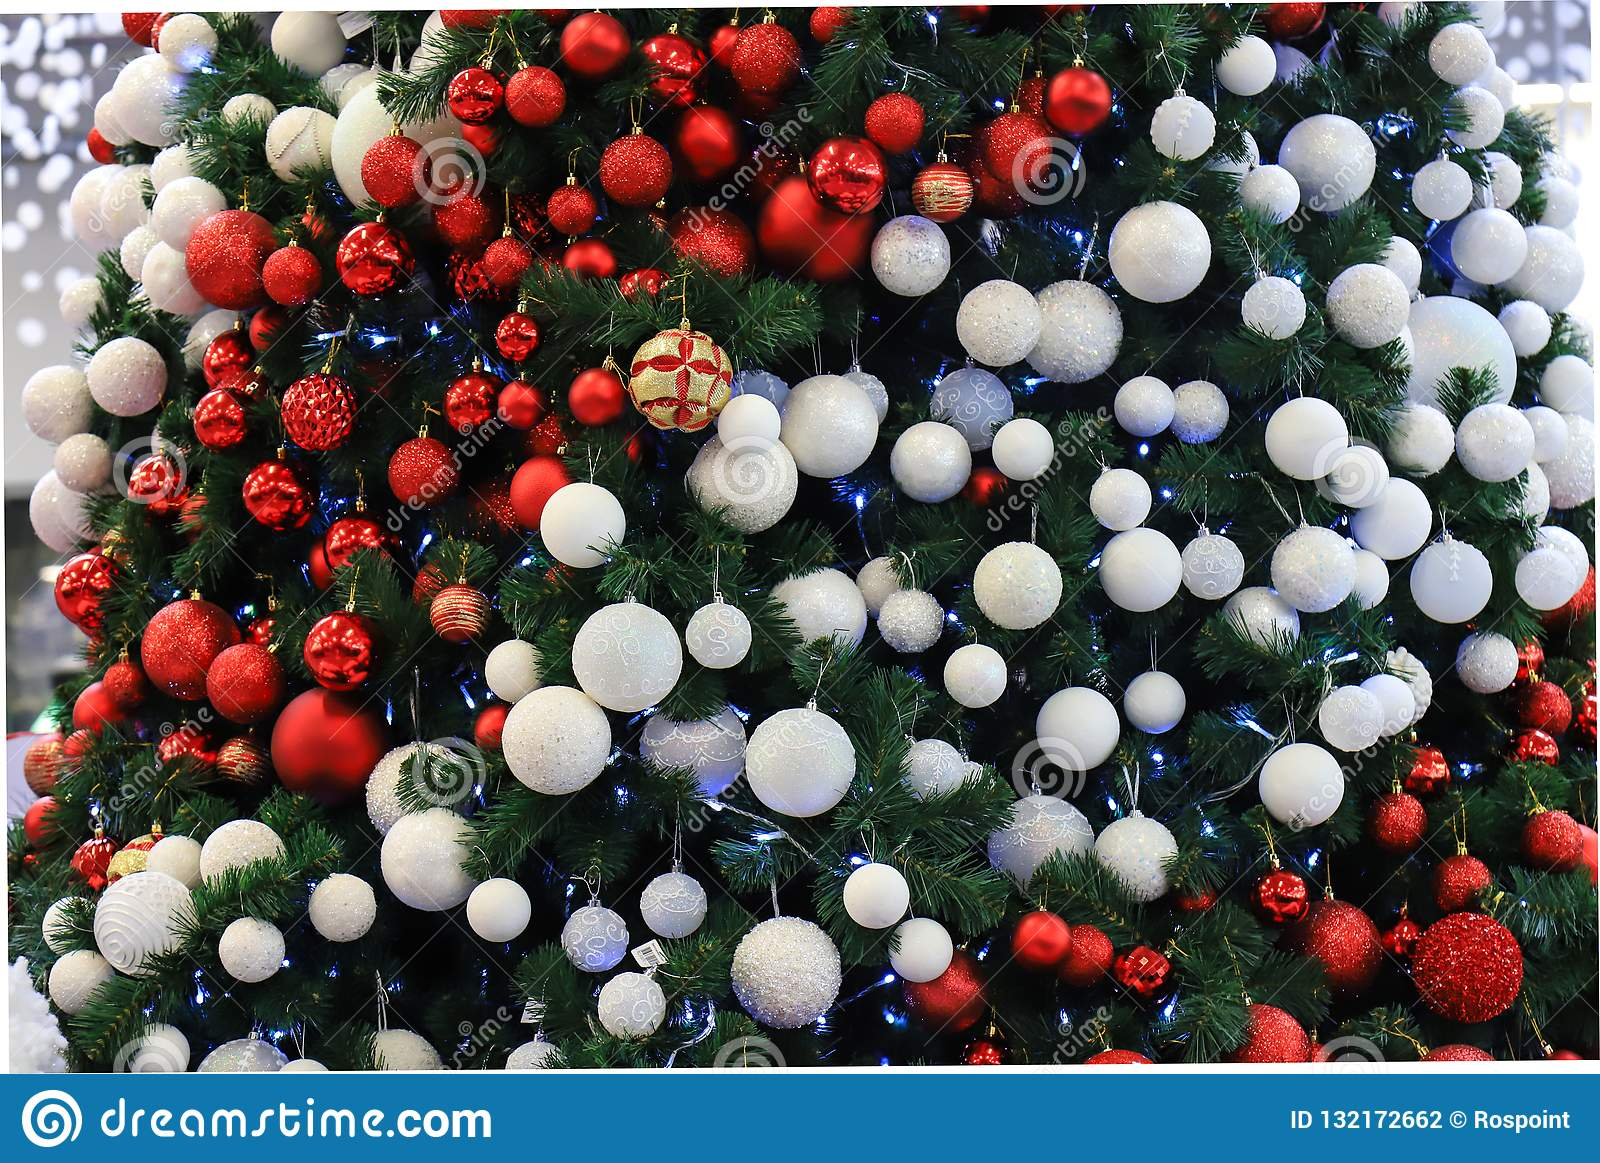 A beautifully decorated Christmas tree with red, white balls and garlands. Design and scenery, New Year s concept, winter holiday